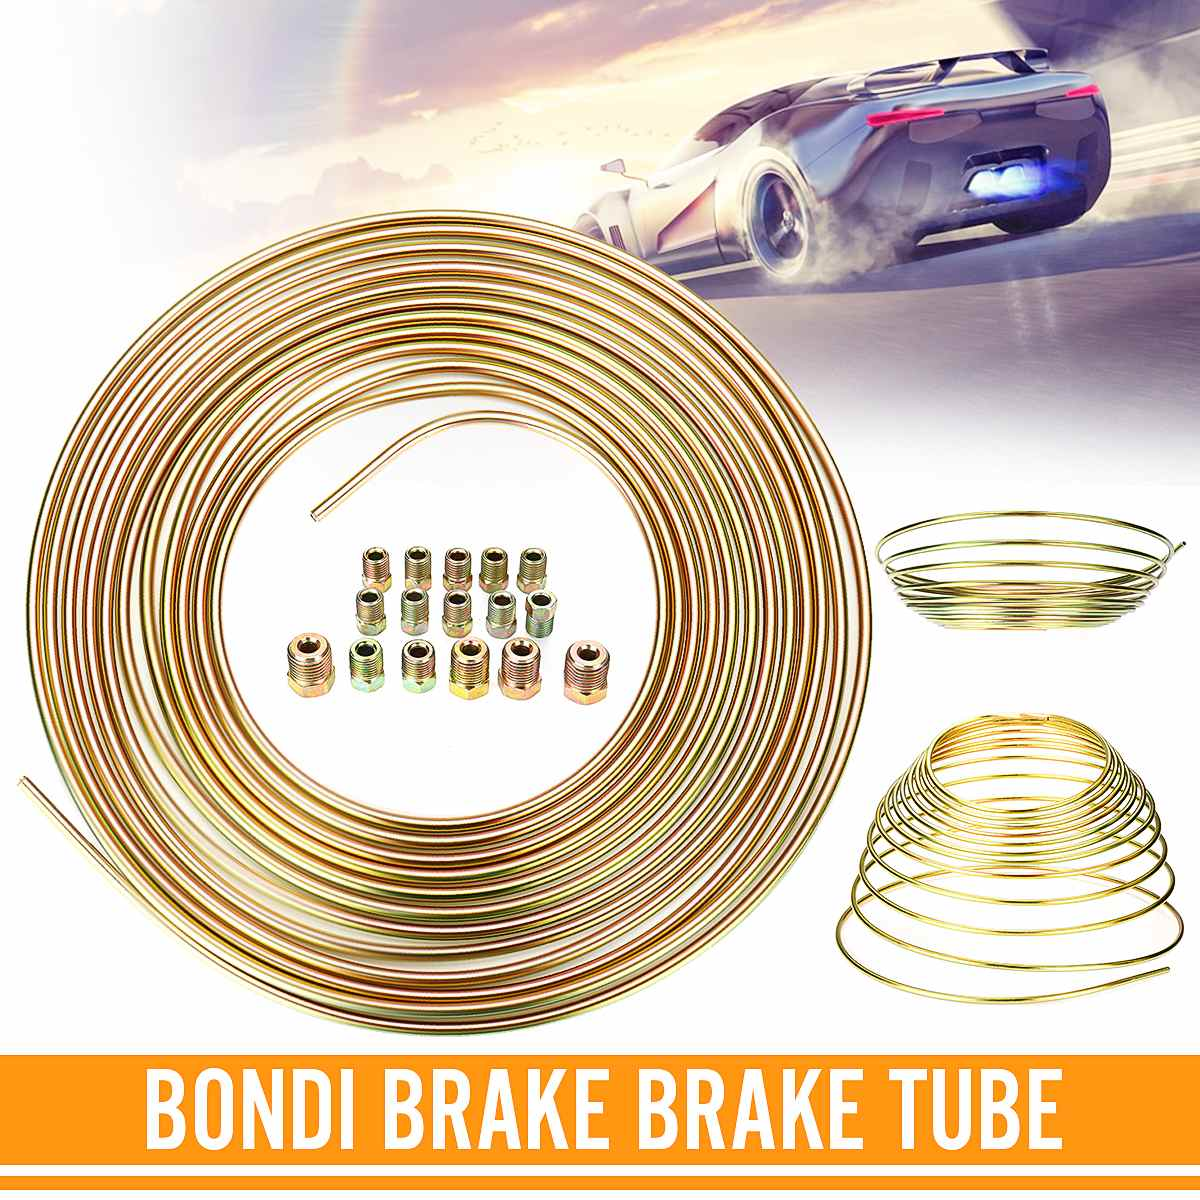 "High Strength 25ft Roll Of 3/16"" Plated Brake Line Tubing OD Copper Nickel With 16PCS Tube Nuts Brake Pipe Hose Line Piping Tube"